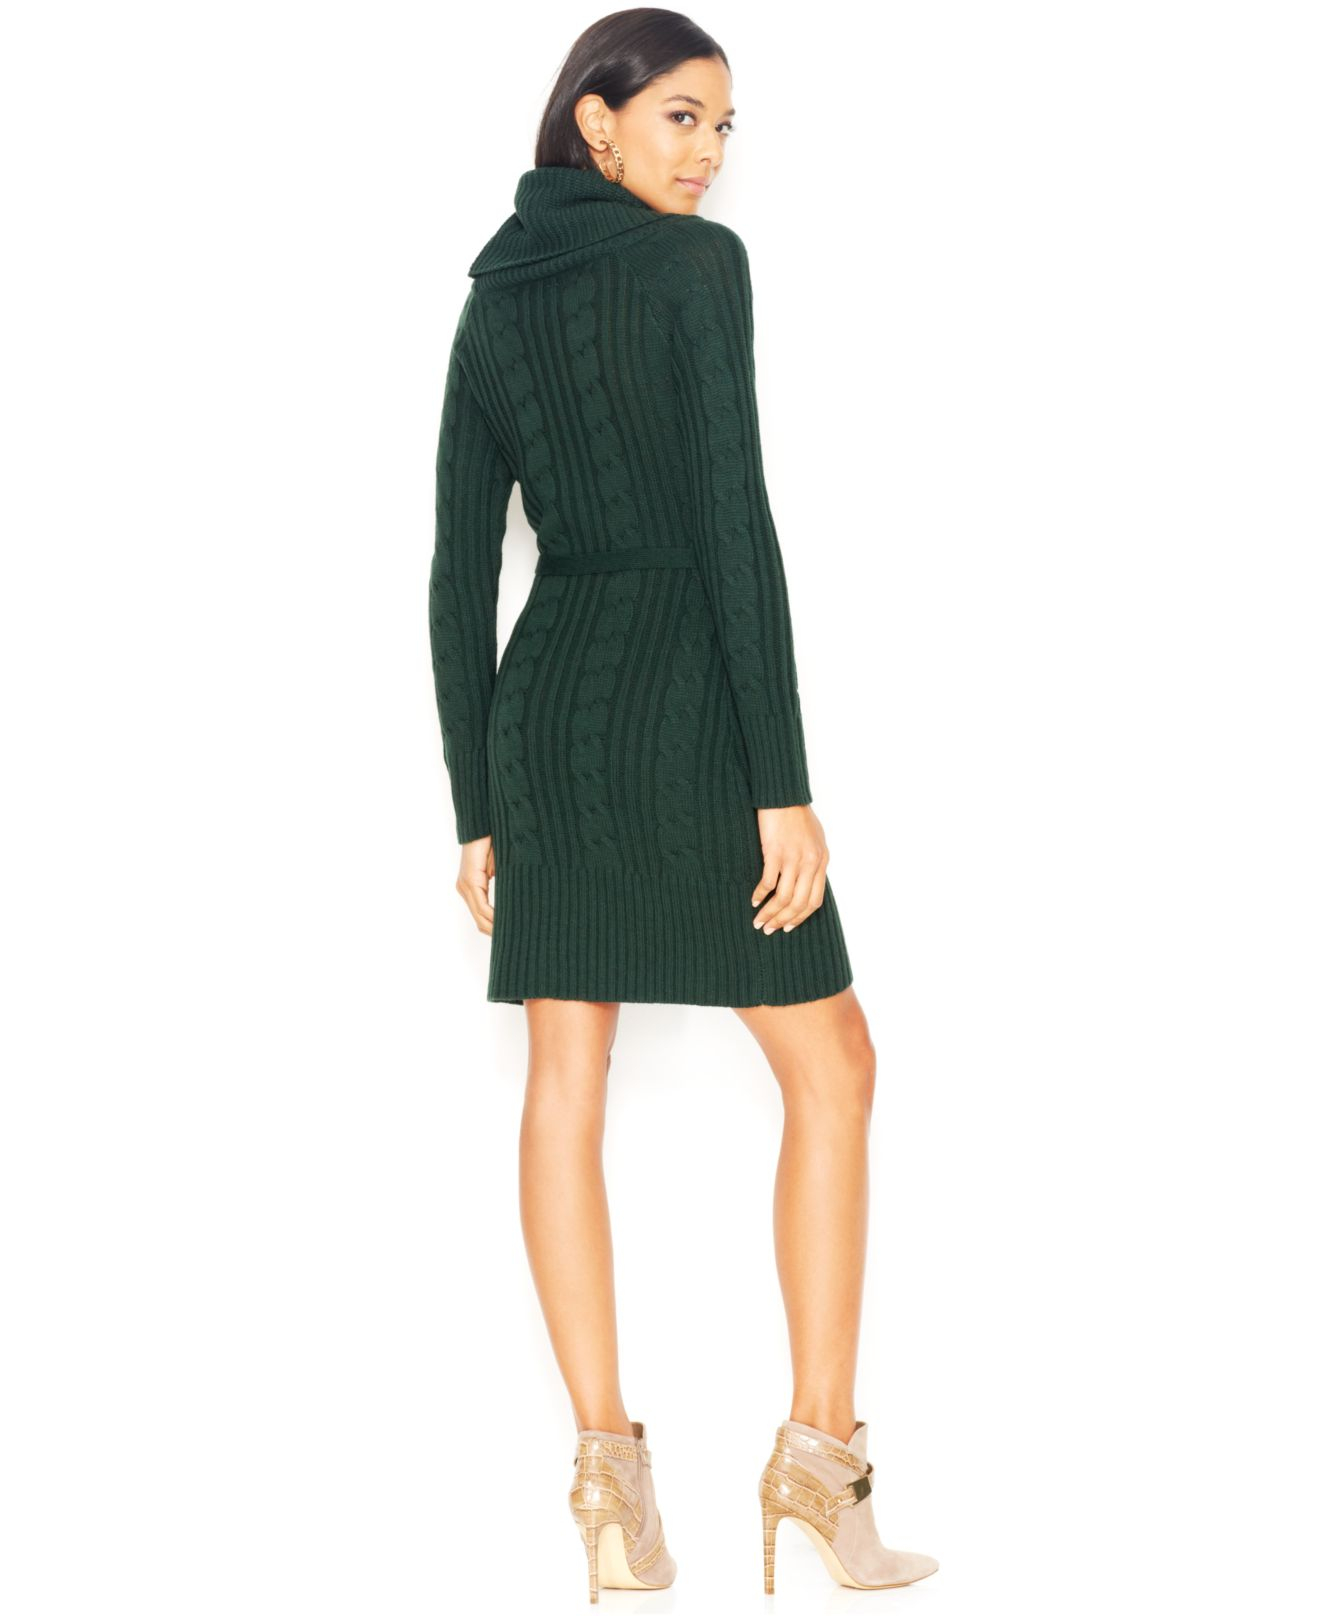 Jessica simpson Cable-Knit Cowl-Neck Sweater Dress in Green | Lyst